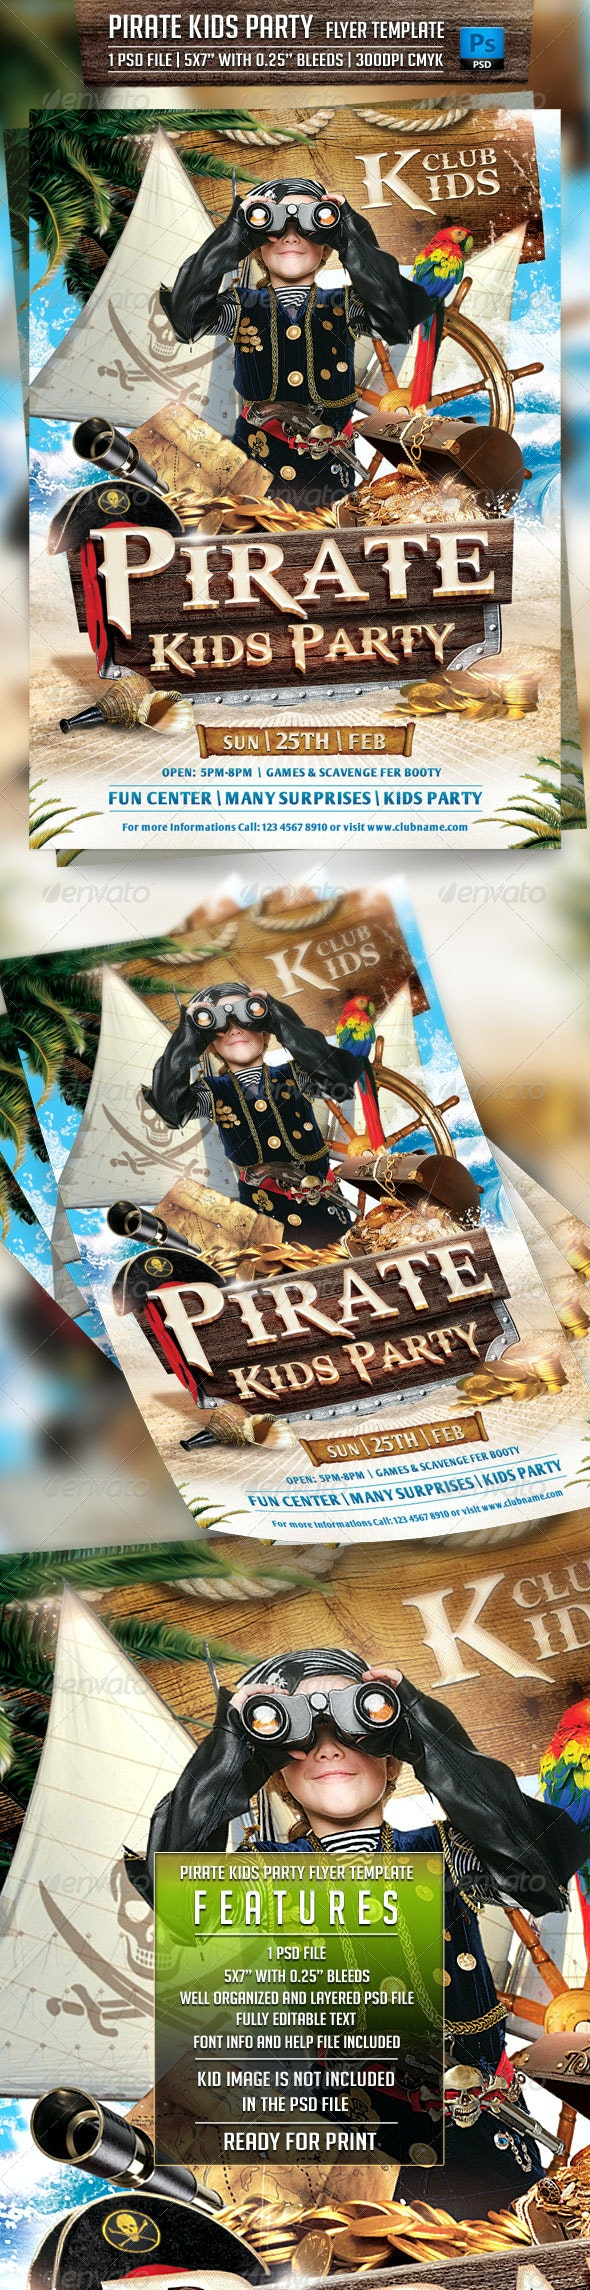 Pirate Kids Party Flyer Template - Flyers Print Templates